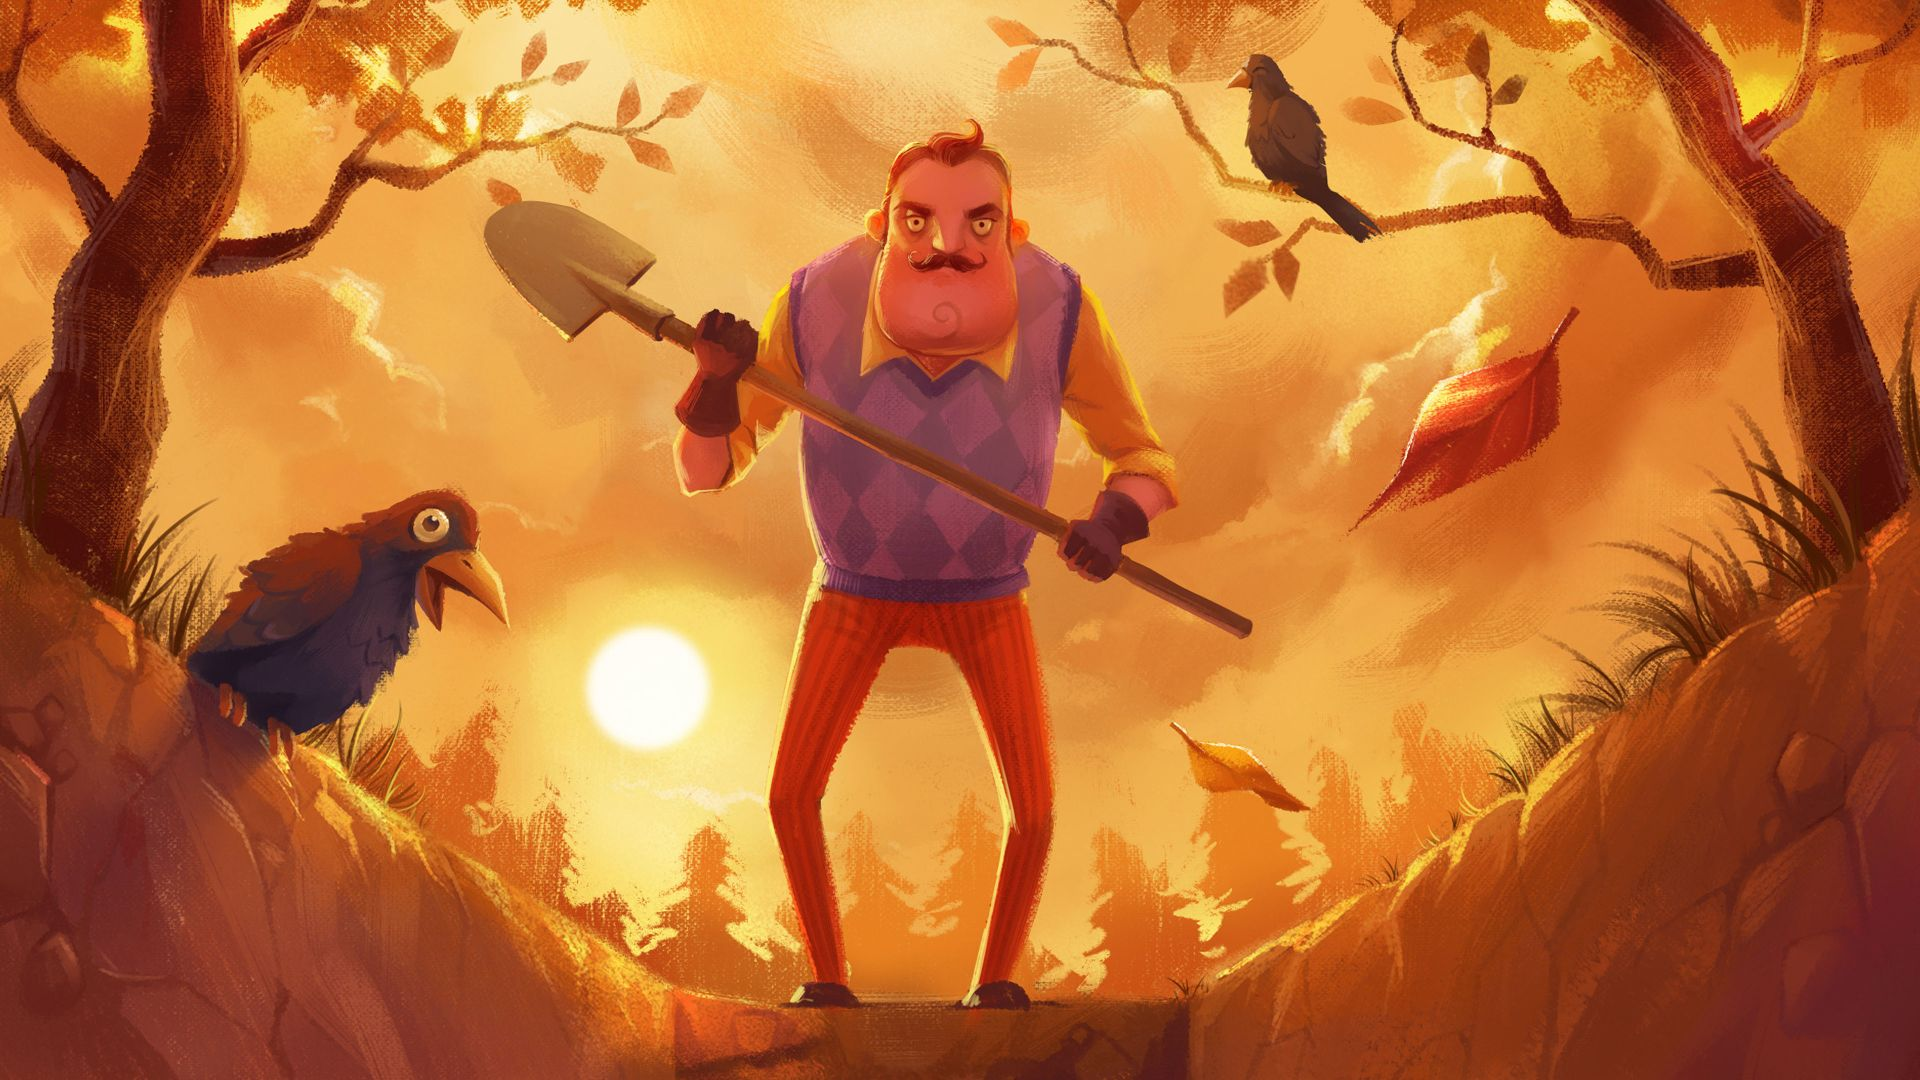 Top 5 games coming to Xbox One next week include Hello